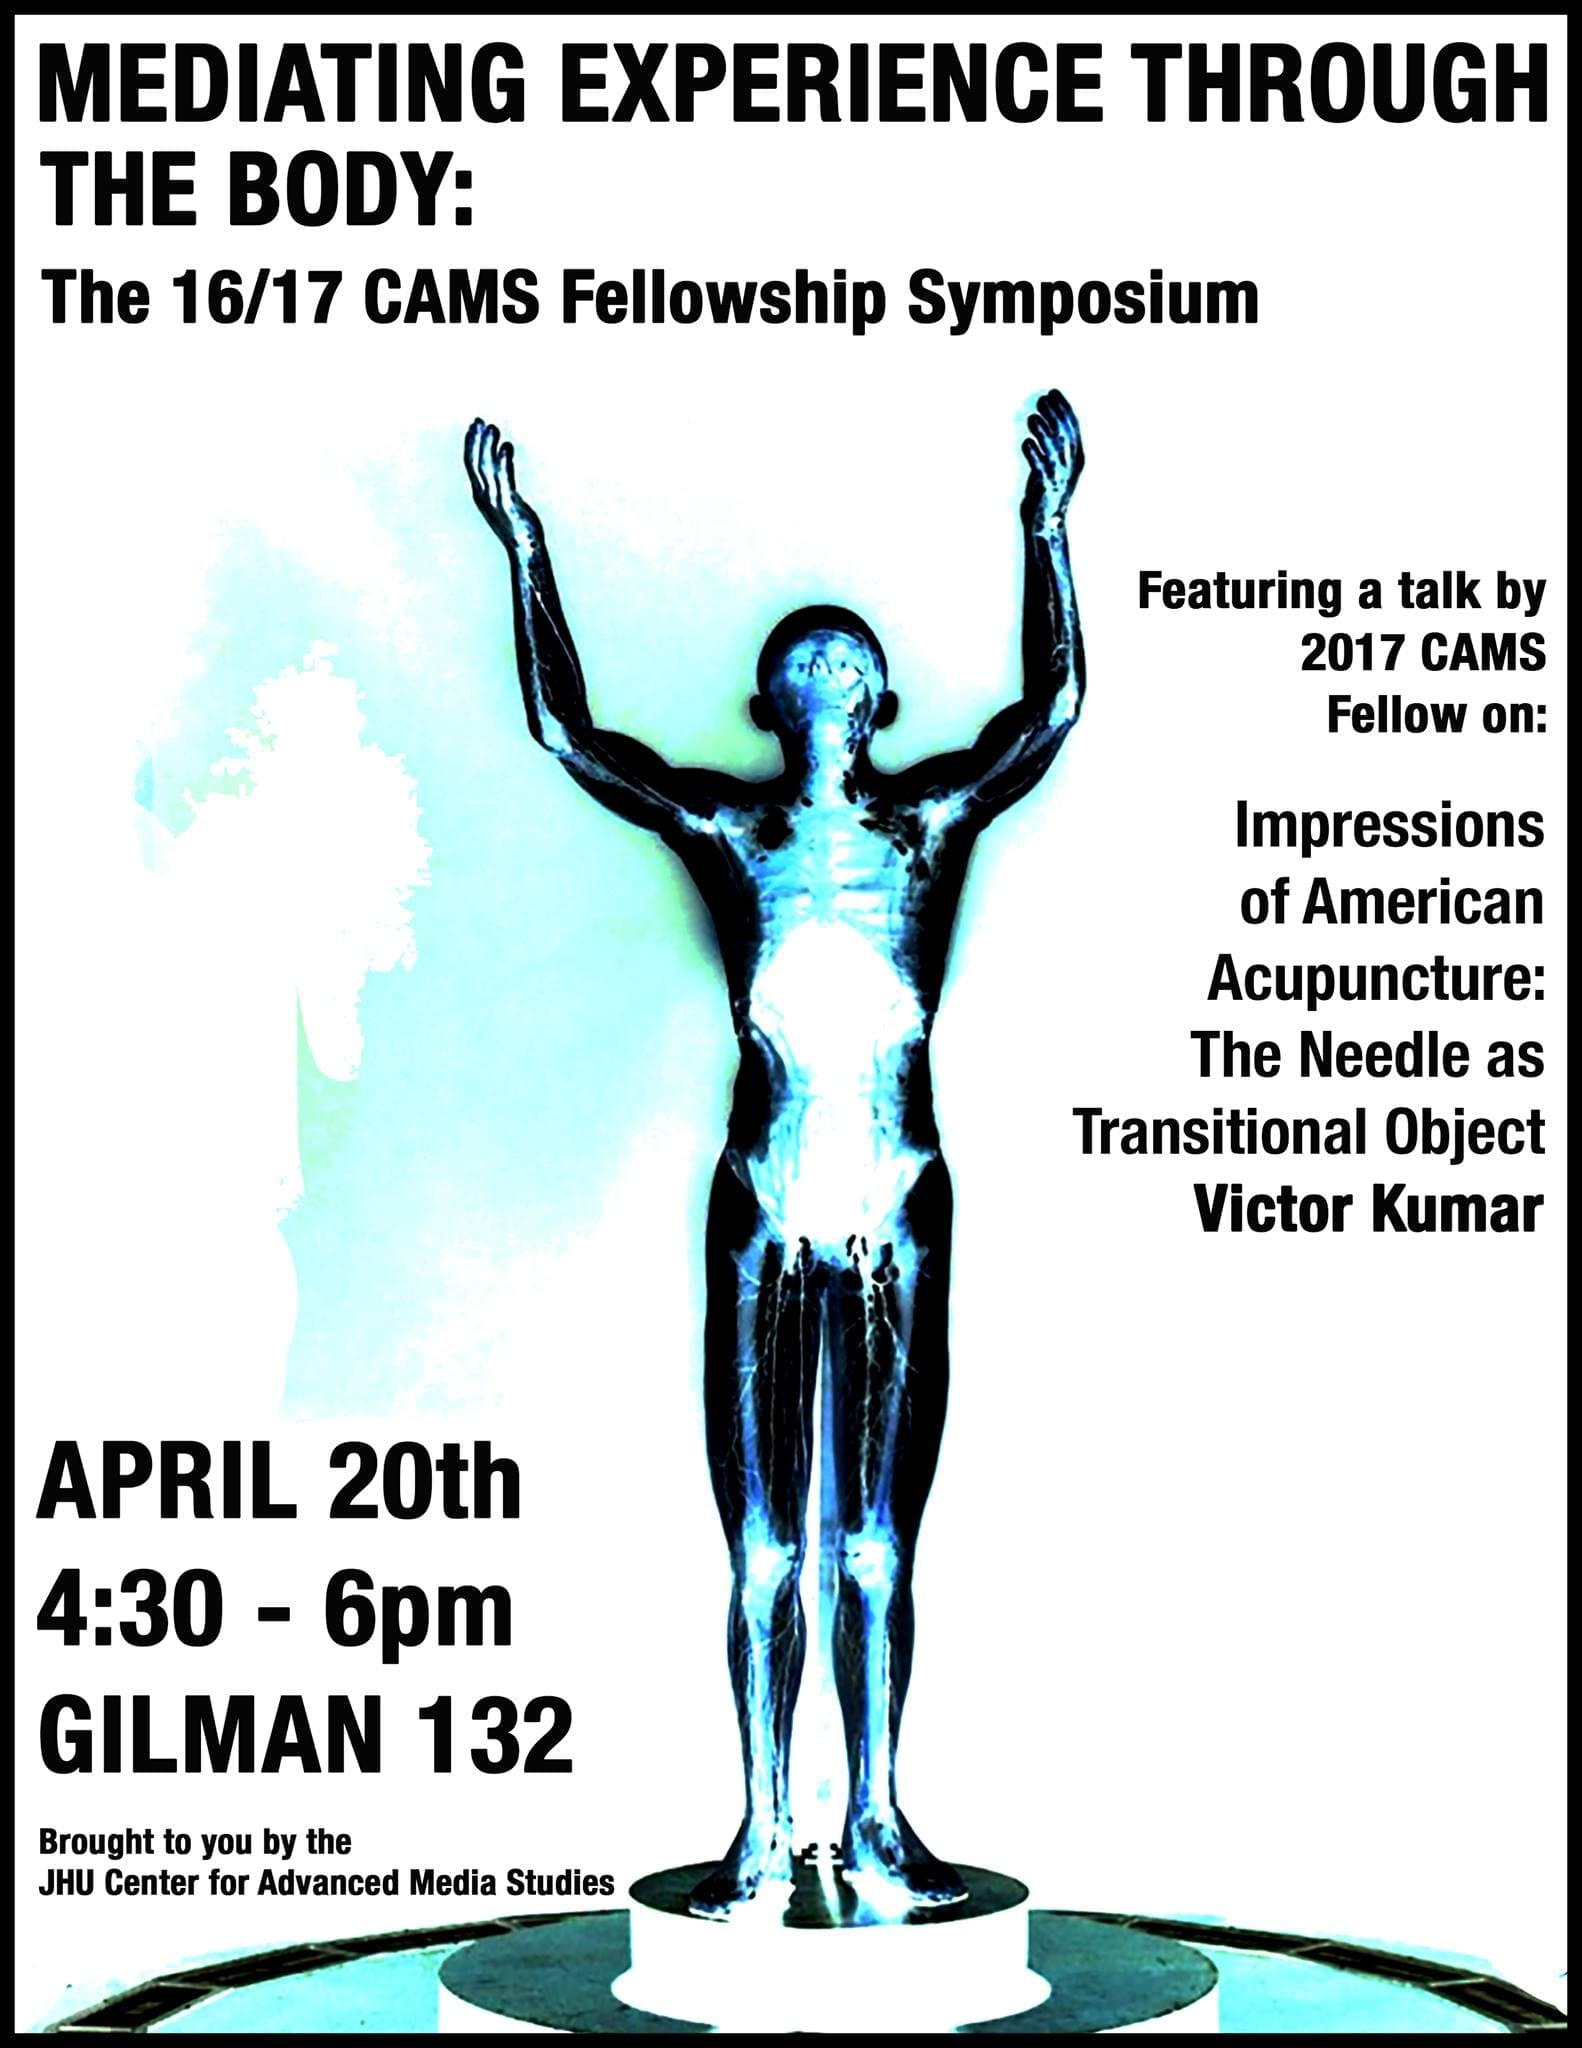 CAMS Fellow Symposium '17: Mediating Experience Through the Body